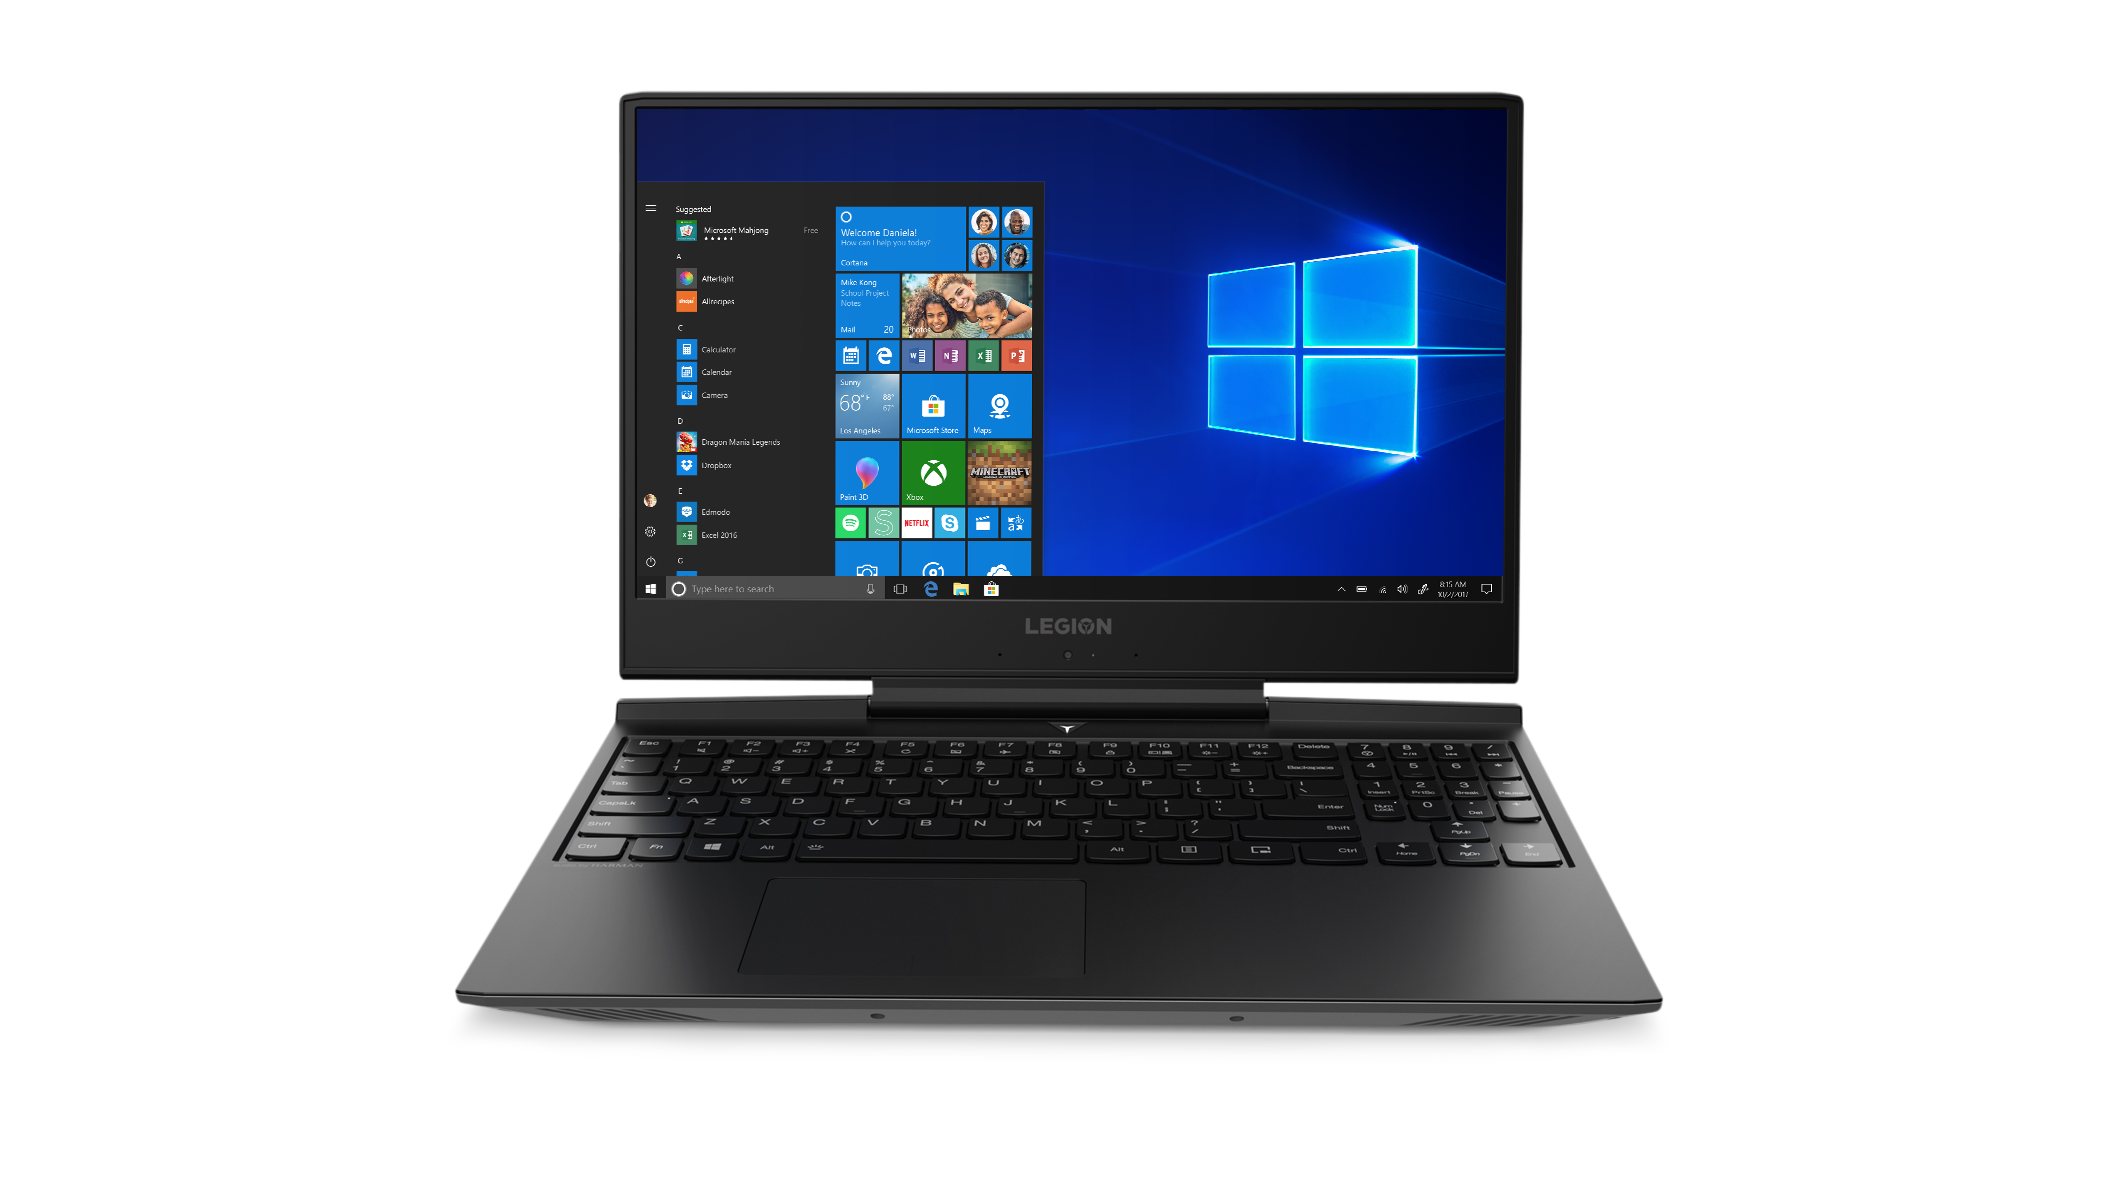 Front view of the Lenovo Legion laptop